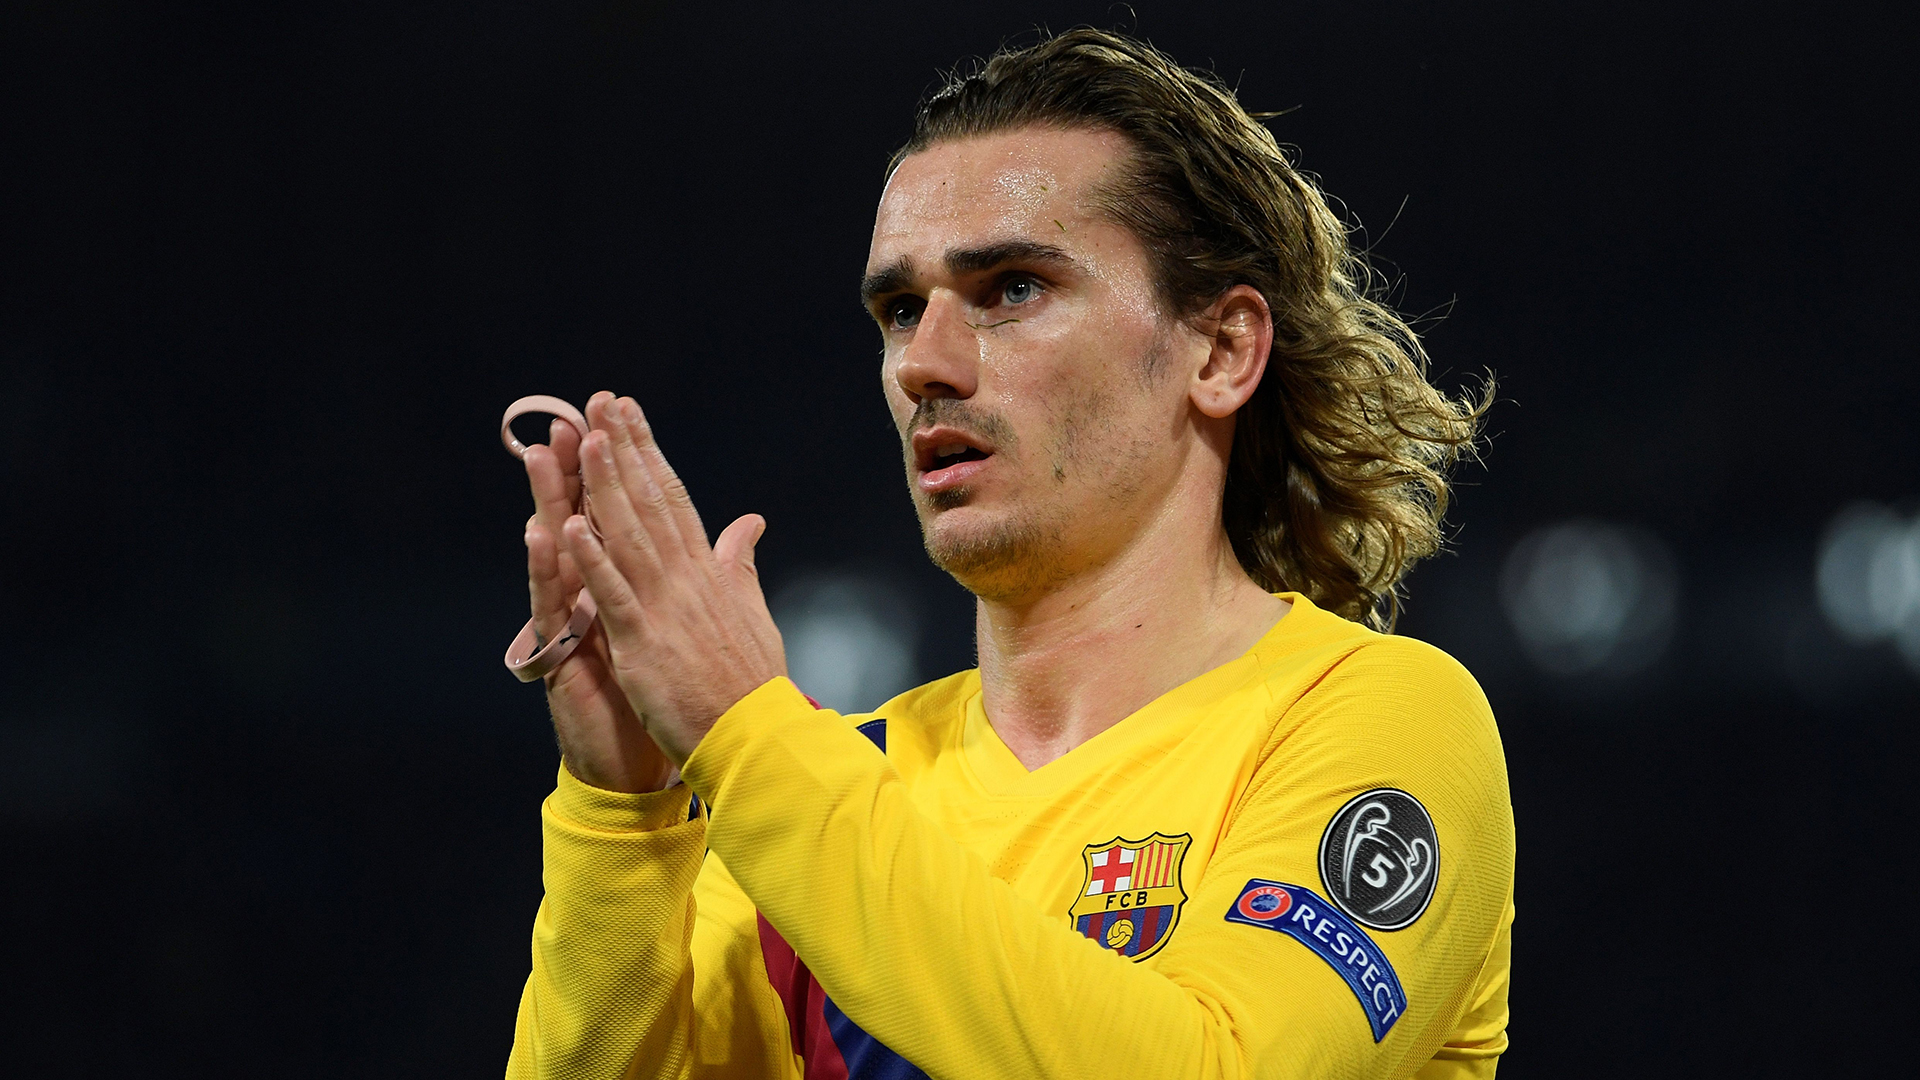 Griezmann intends to be 'important' for Barcelona as Lautaro & Neymar transfer talk rages